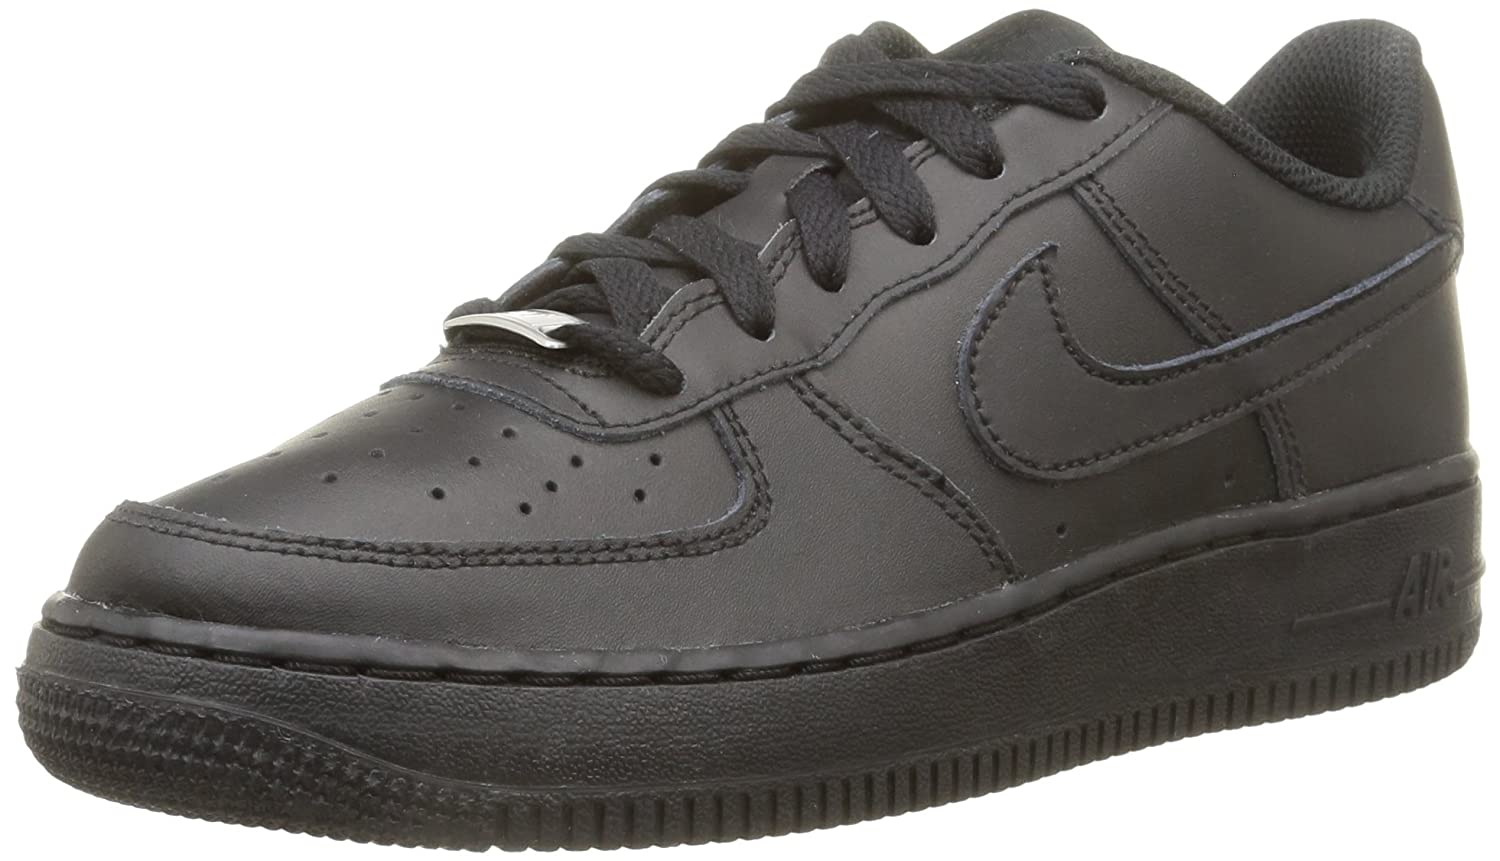 c909048c683b3b Amazon.com  Nike Air Force 1 Low GS Lifestyle Sneakers  NIKE  Shoes